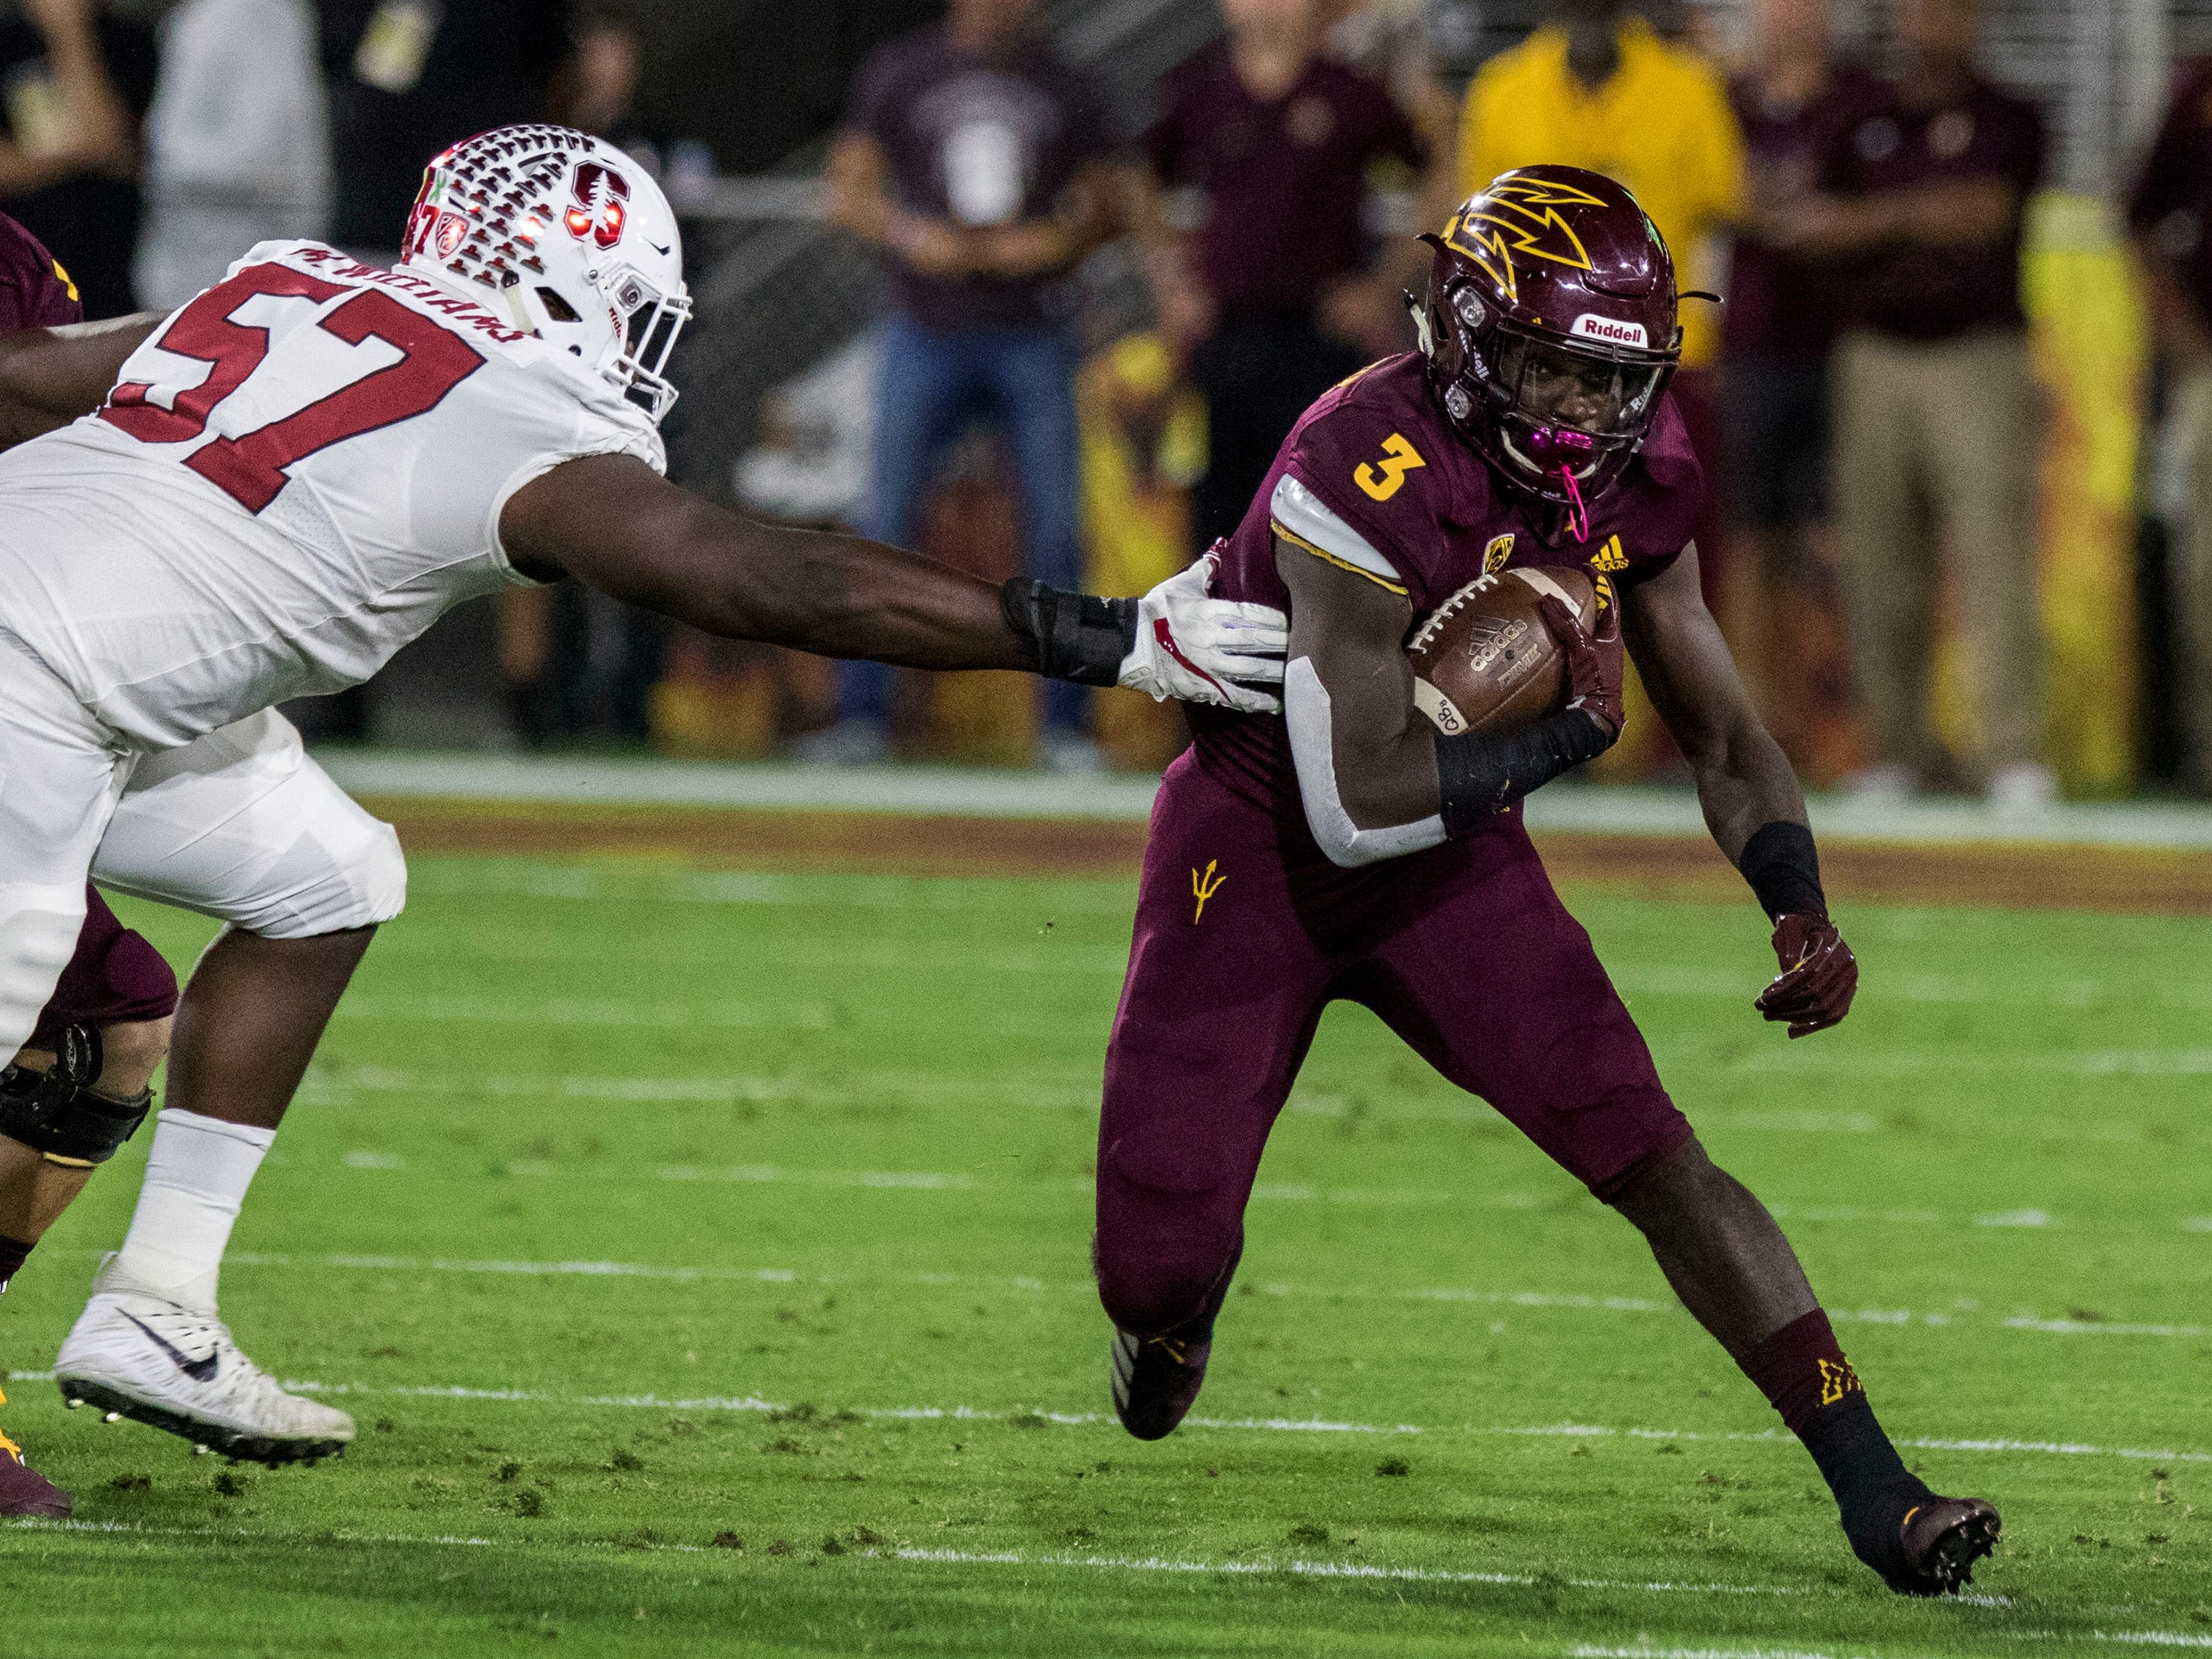 Arizona State's Eno Benjamin slips past Stanford's Michael Williams during the first half of an NCAA college football game Thursday, Oct. 18, 2018, in Tempe, Ariz.